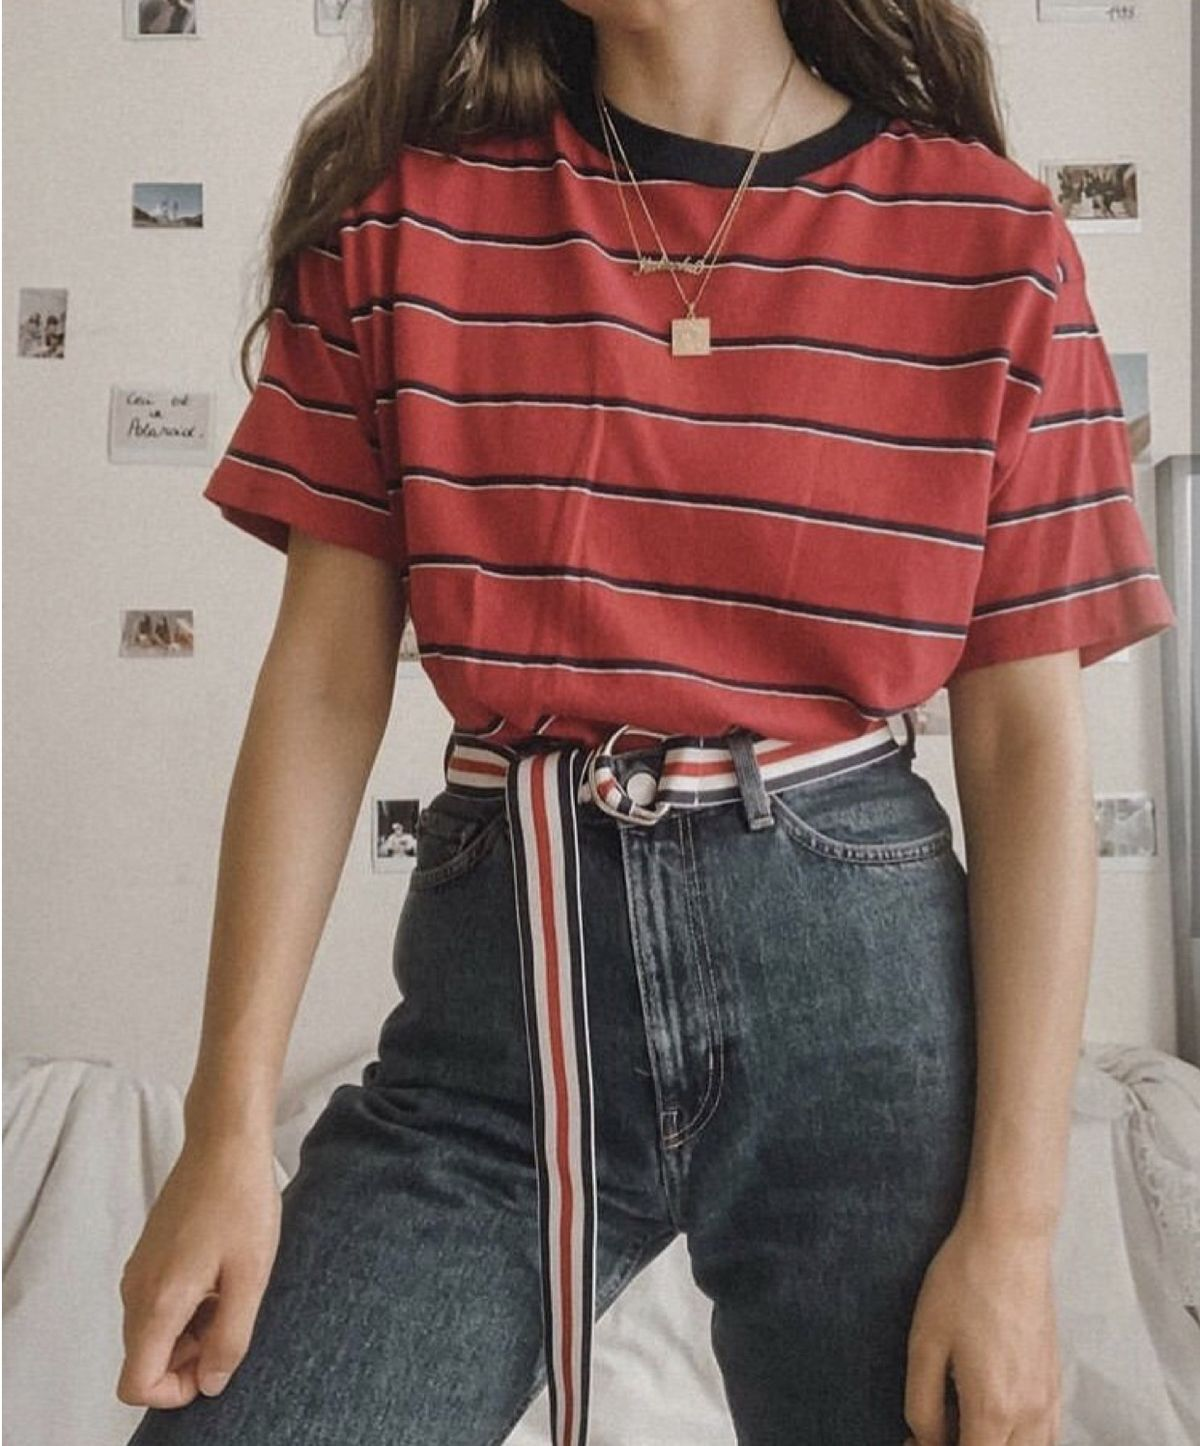 Pinterest Elizabethrembis In 2020 Retro Outfits Aesthetic Clothes Trendy Outfits